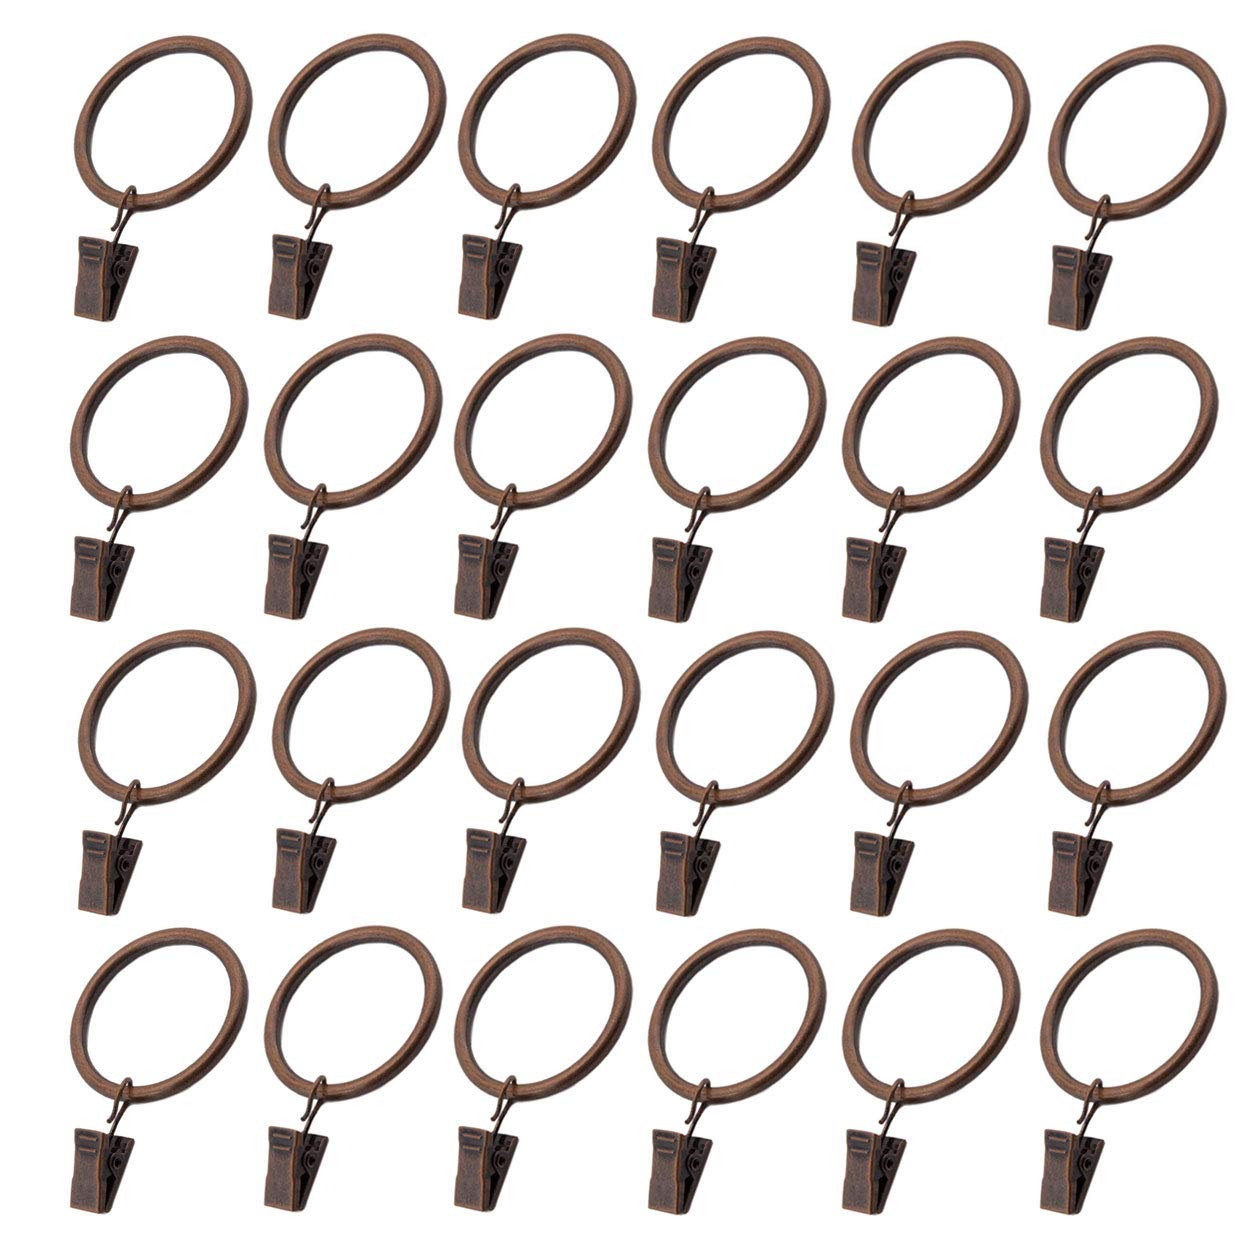 Ginbel Direct 20-Pack Copper Metal Heavy Duty Drapery Rustproof Curtain Rings with Clips Stainless Steel for Windows Bathroom Home Kitchen (Copper, 1.5 inch Interior Diameter)